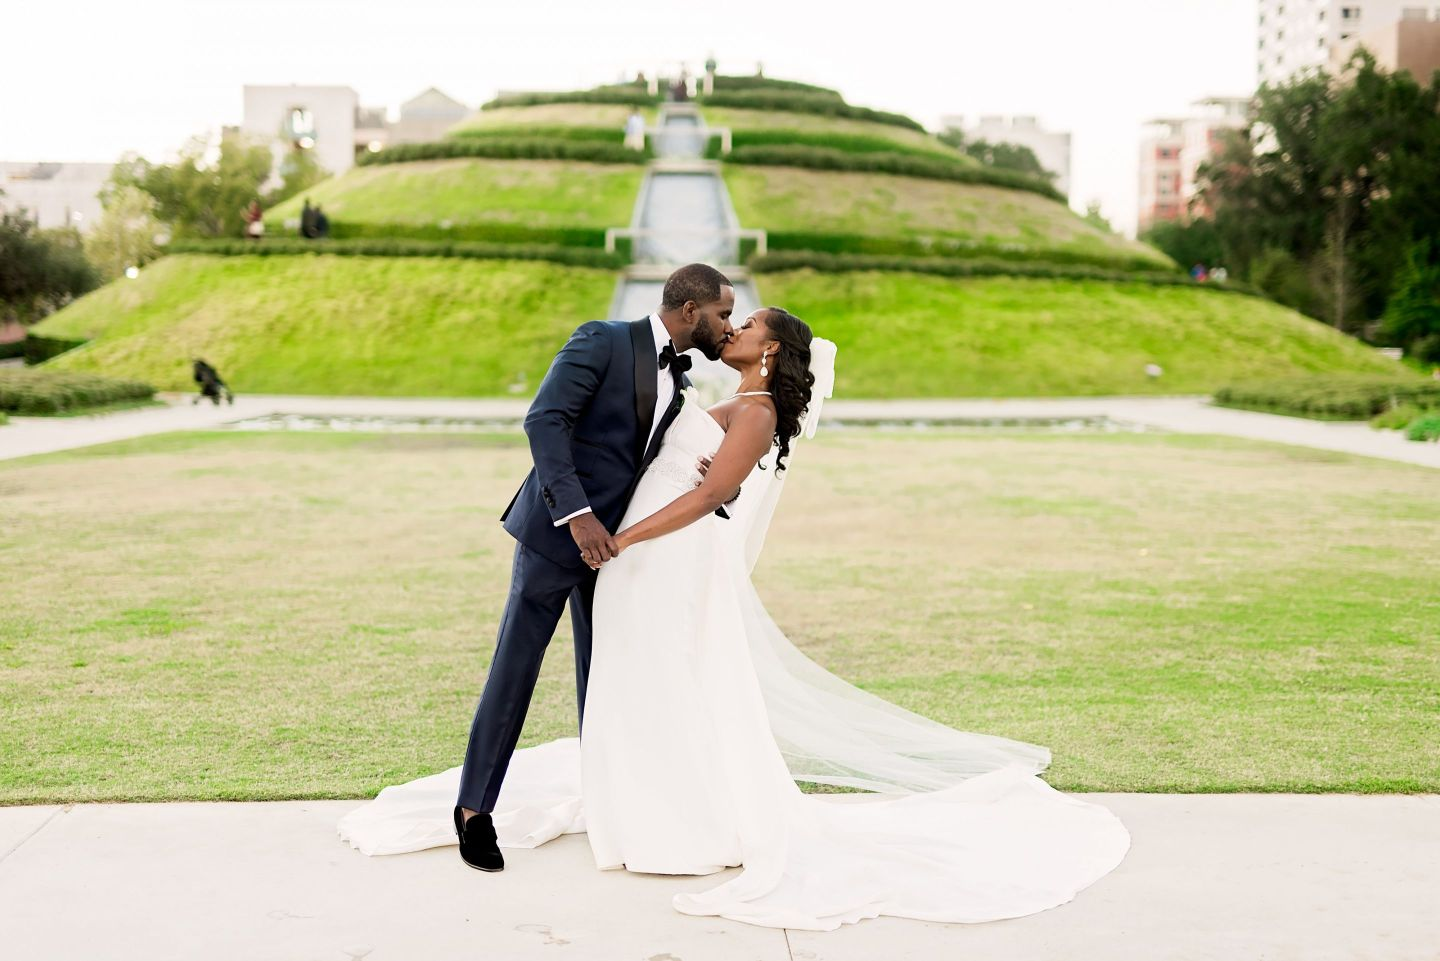 Andre-and-Gina-Pharris-Photography-0060 Houston, TX Wedding at the Buffalo Soldier Museum